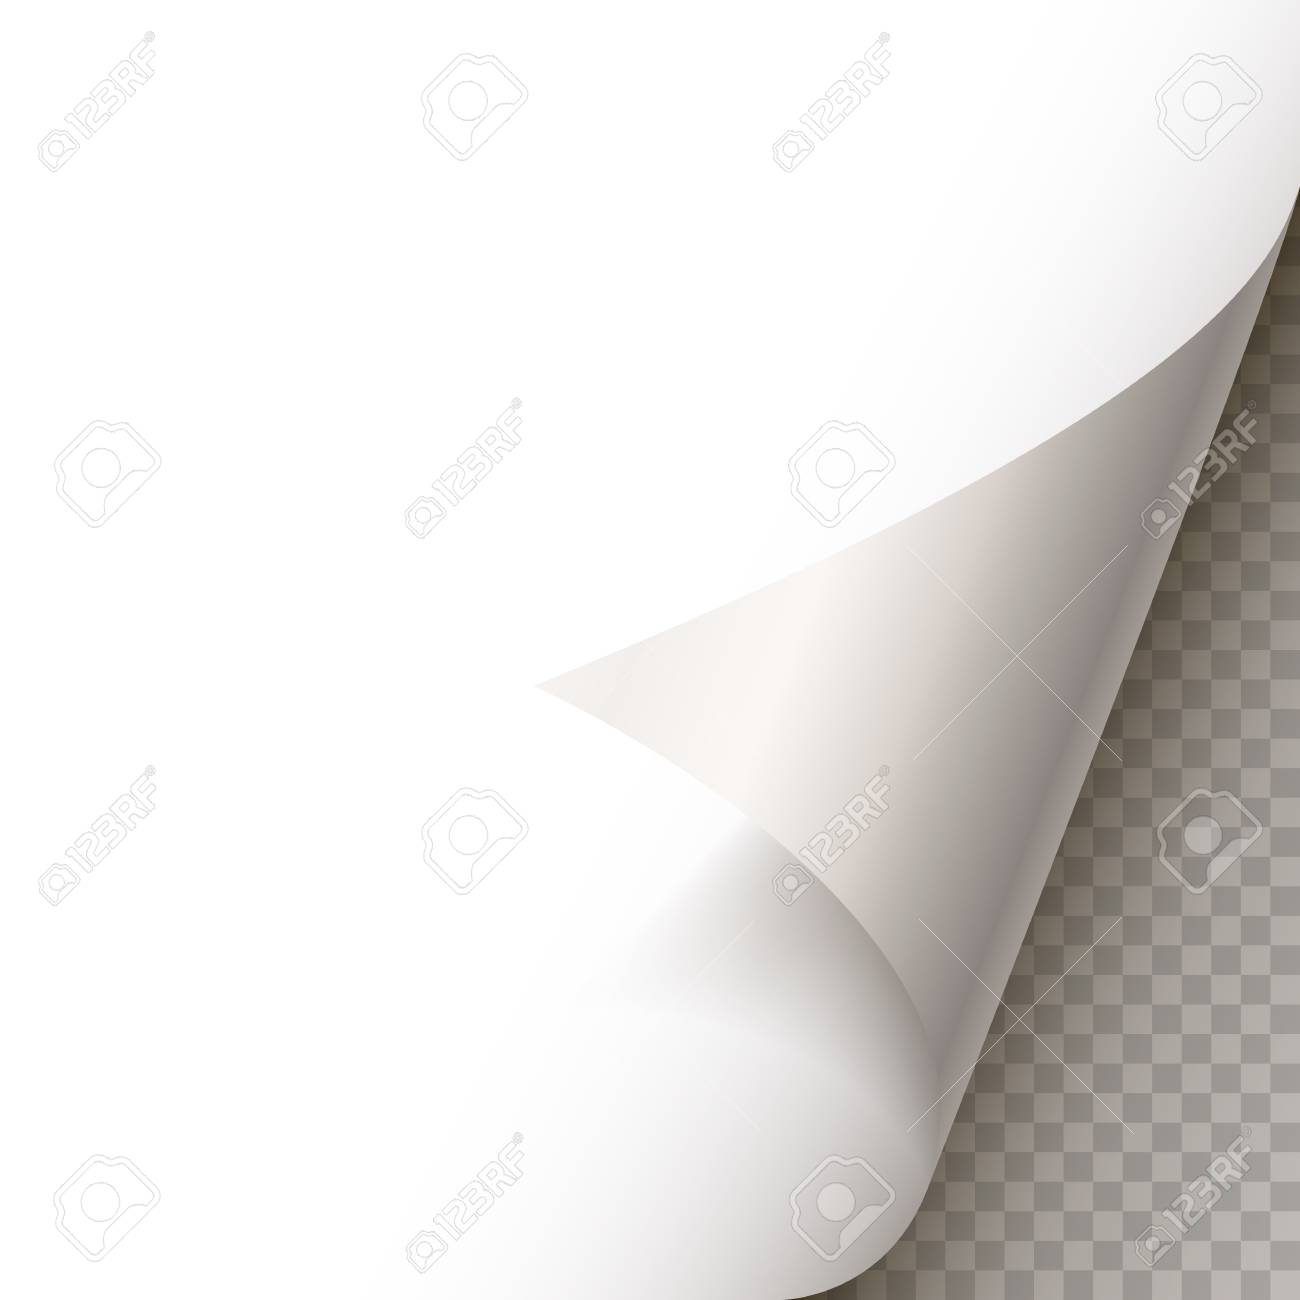 Page curl with shadow on blank sheet of paper. White paper sticker. Element for advertising and promotional message isolated on transparent background. template design element, Vector illustration - 128489369